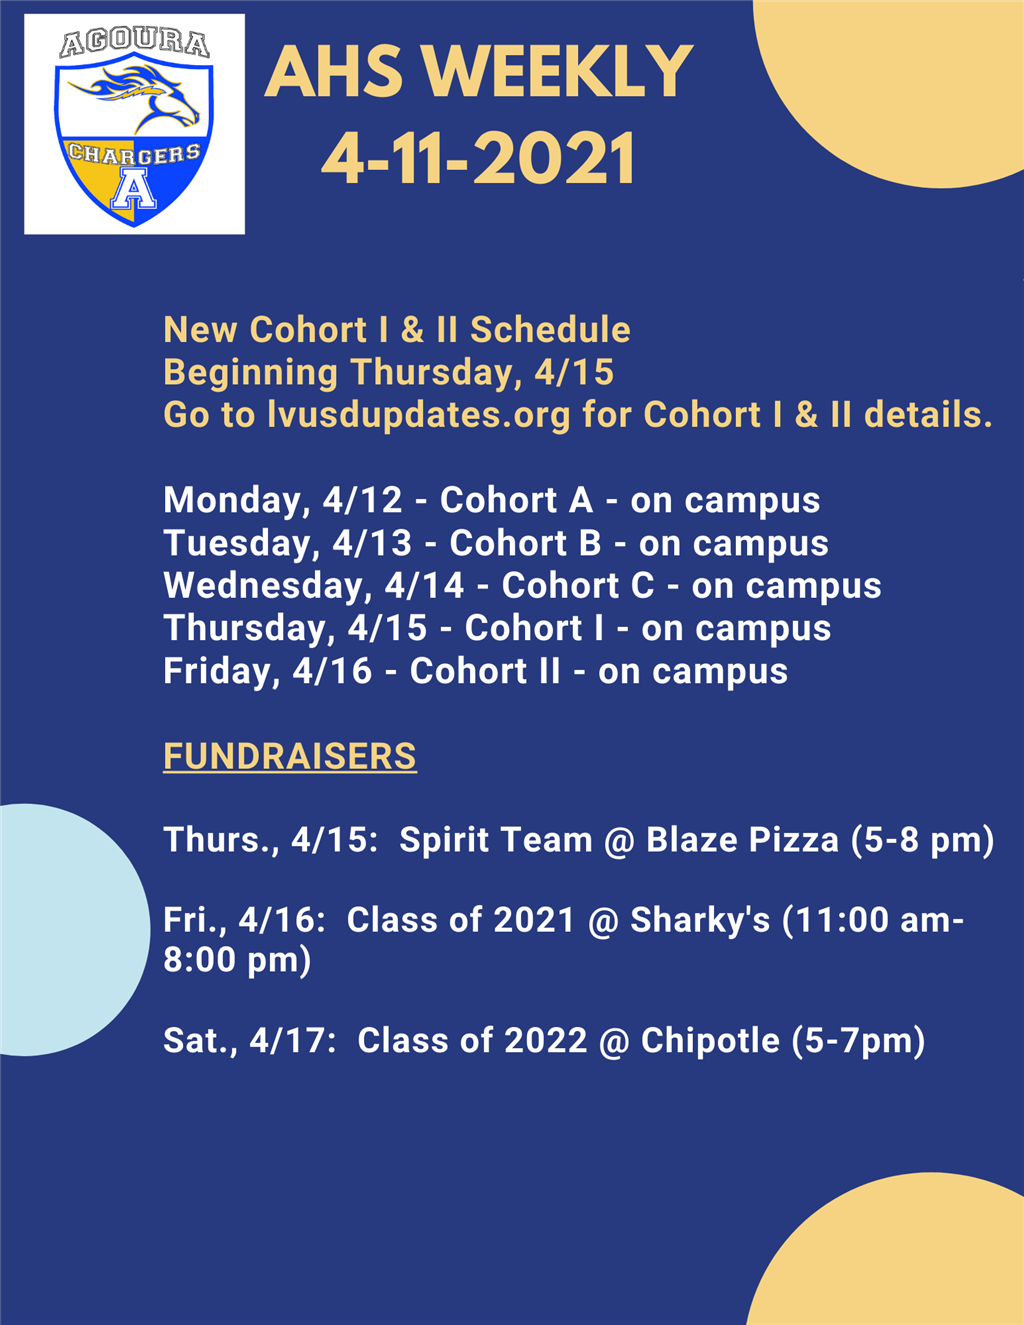 AHS Weekly 4-11-21 along with Principal Stephanie McClay's Updates and links for Cohort I & II Schedules